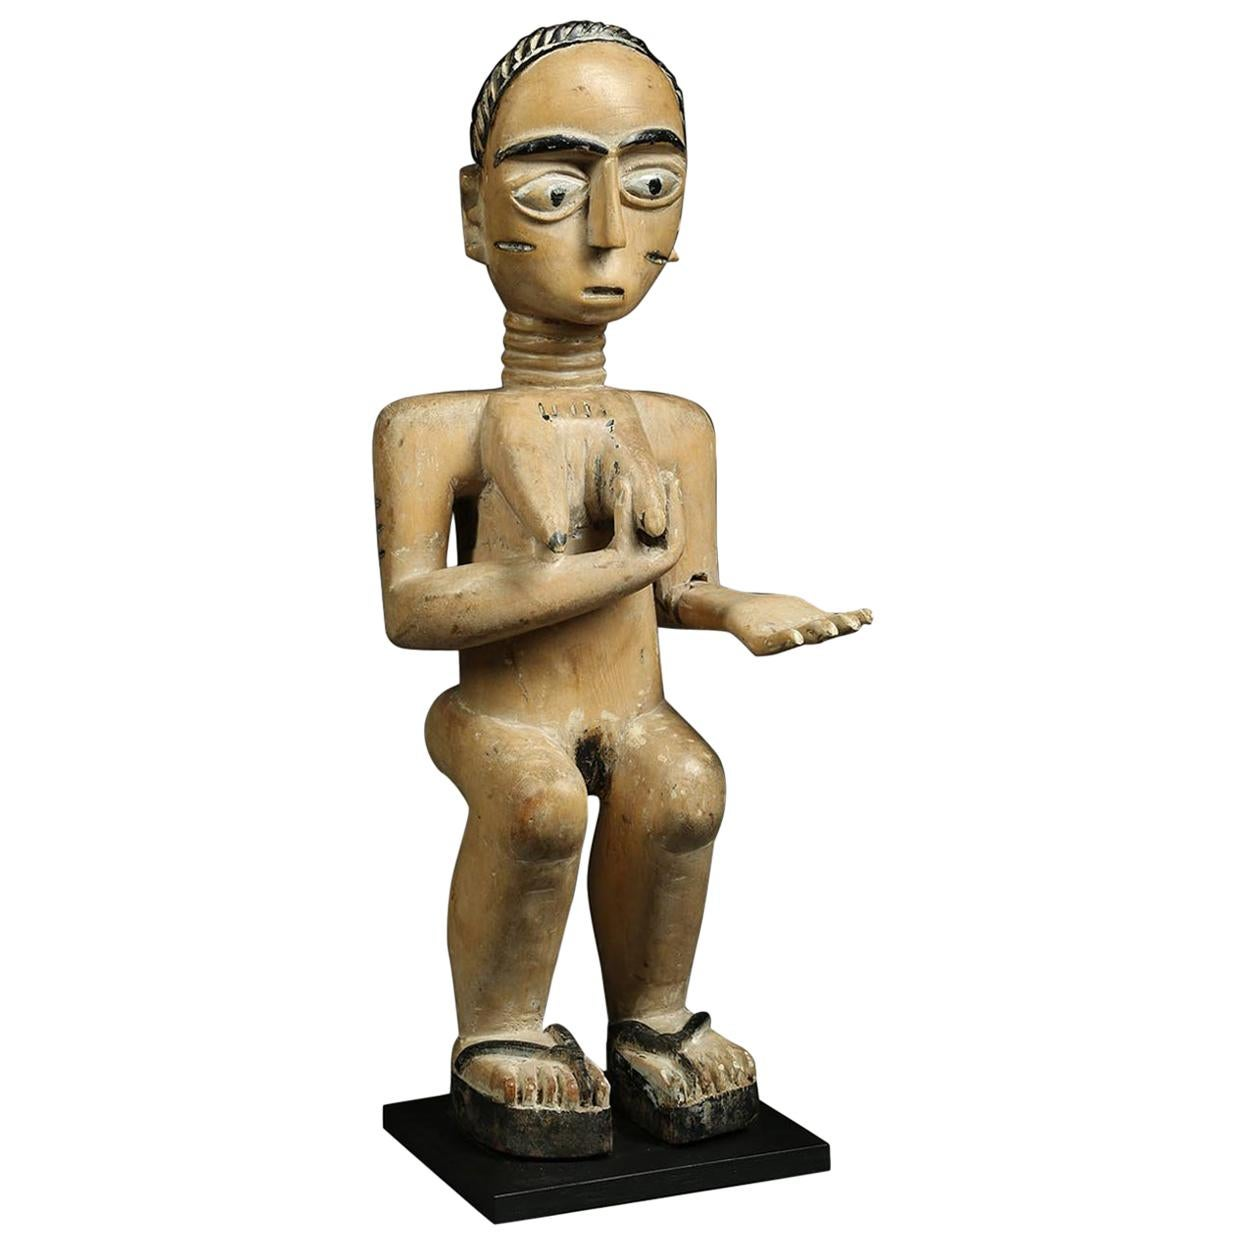 Ashanti Akan 'Ghana' Tribal Standing Female Figure with Arm Out, Africa